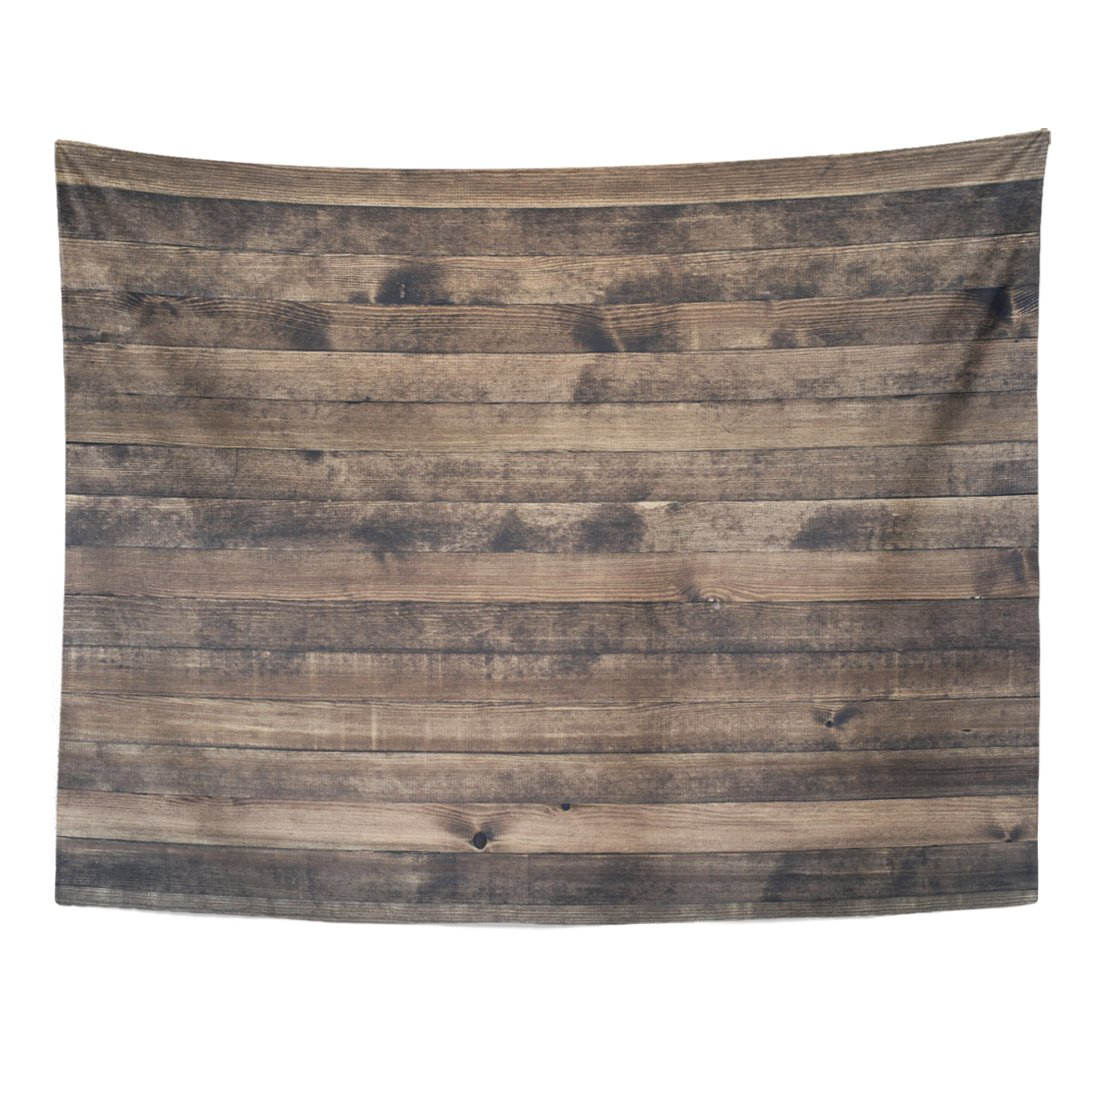 TOMPOP Tapestry Brown Wall of Old Wooden Plank Boards Material Gray Home Decor Wall Hanging for Living Room Bedroom Dorm 60x80 Inches